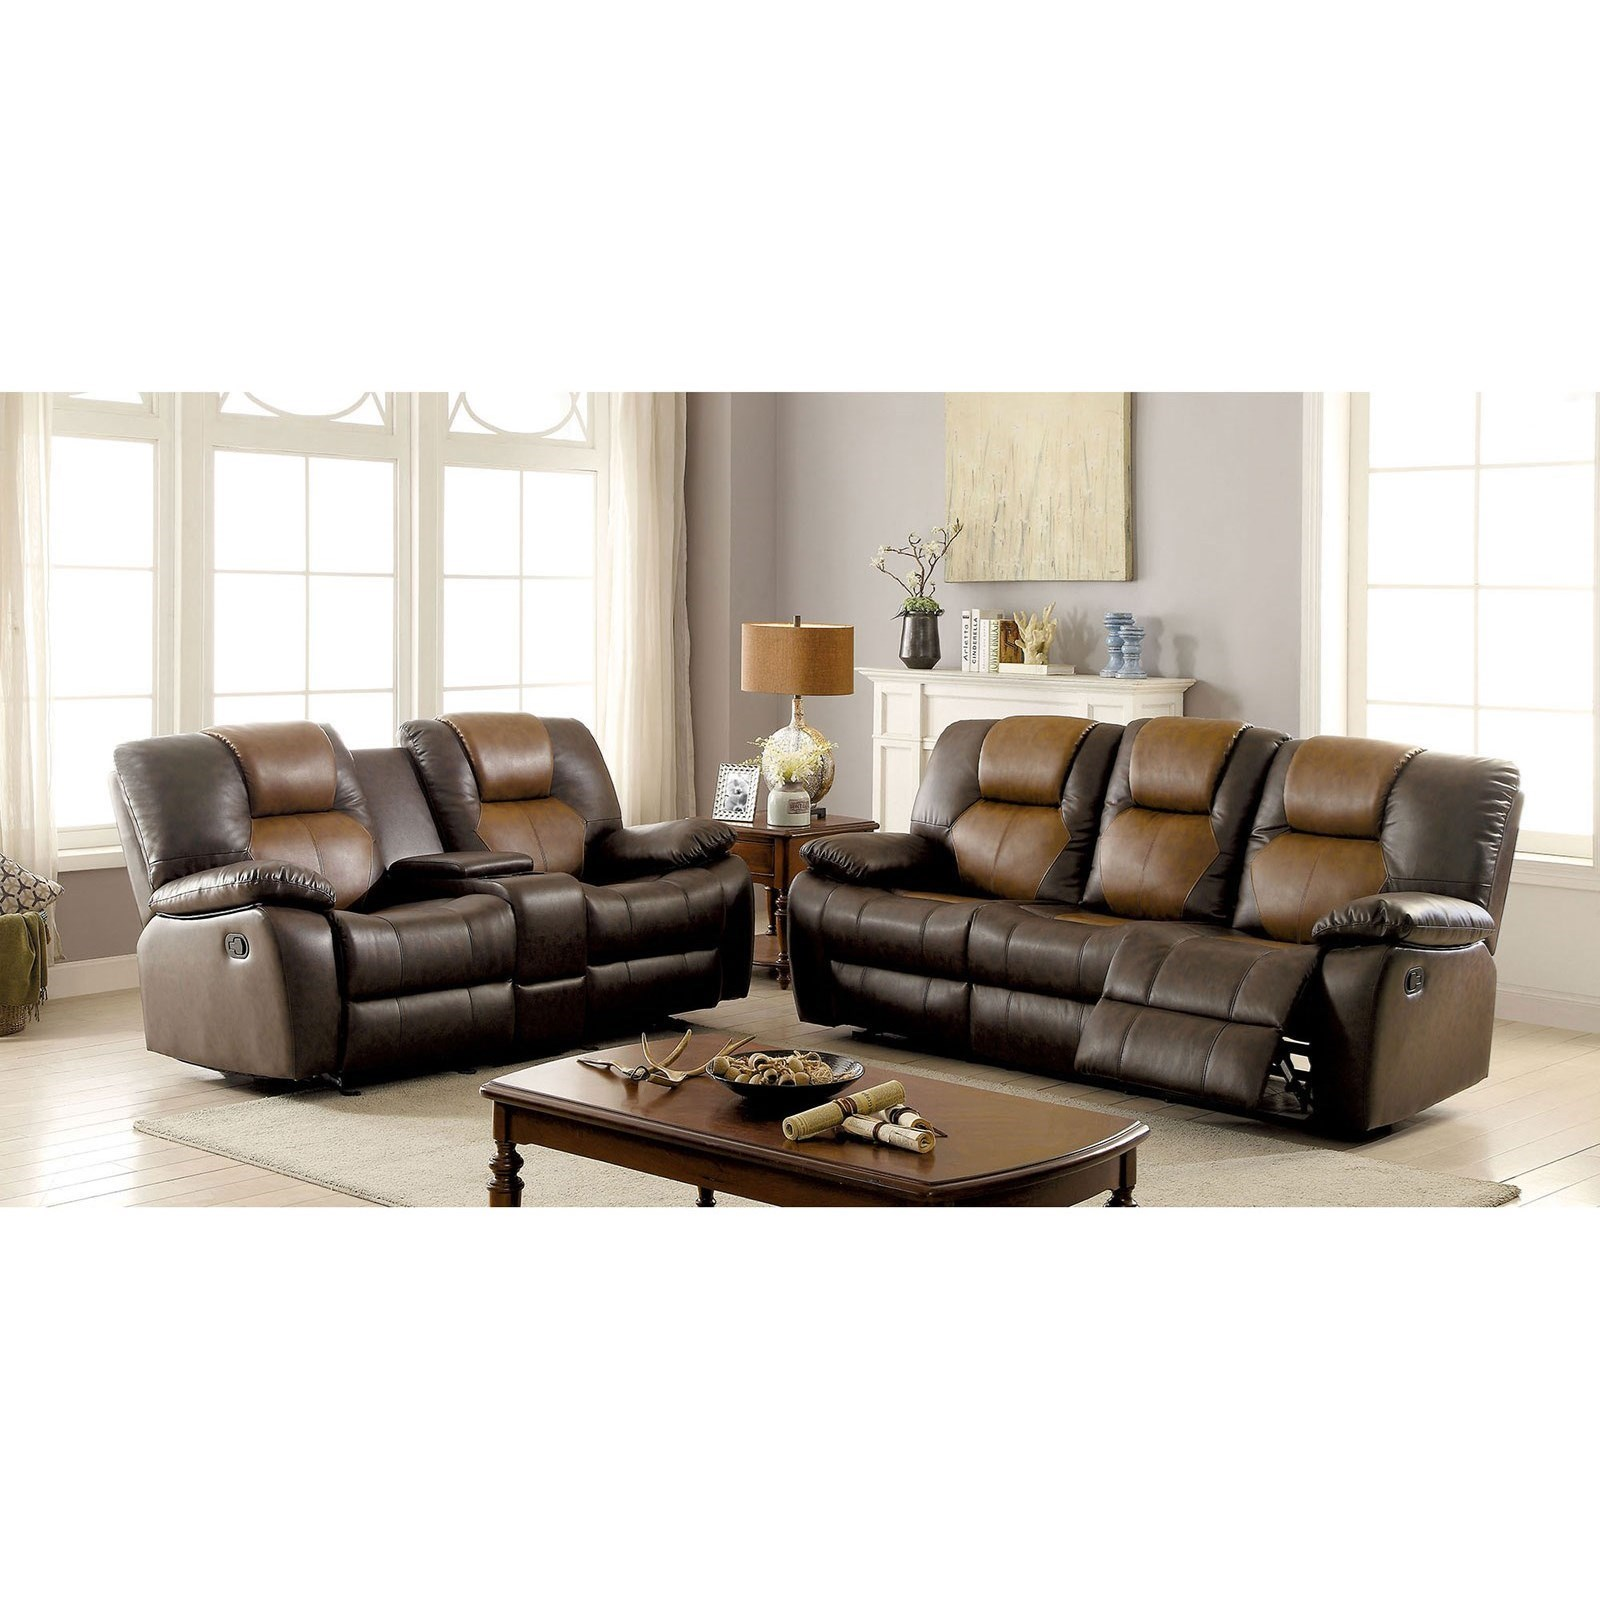 Pollux Reclining Sofa and Love Seat and Chair by Furniture of America - FOA at Del Sol Furniture